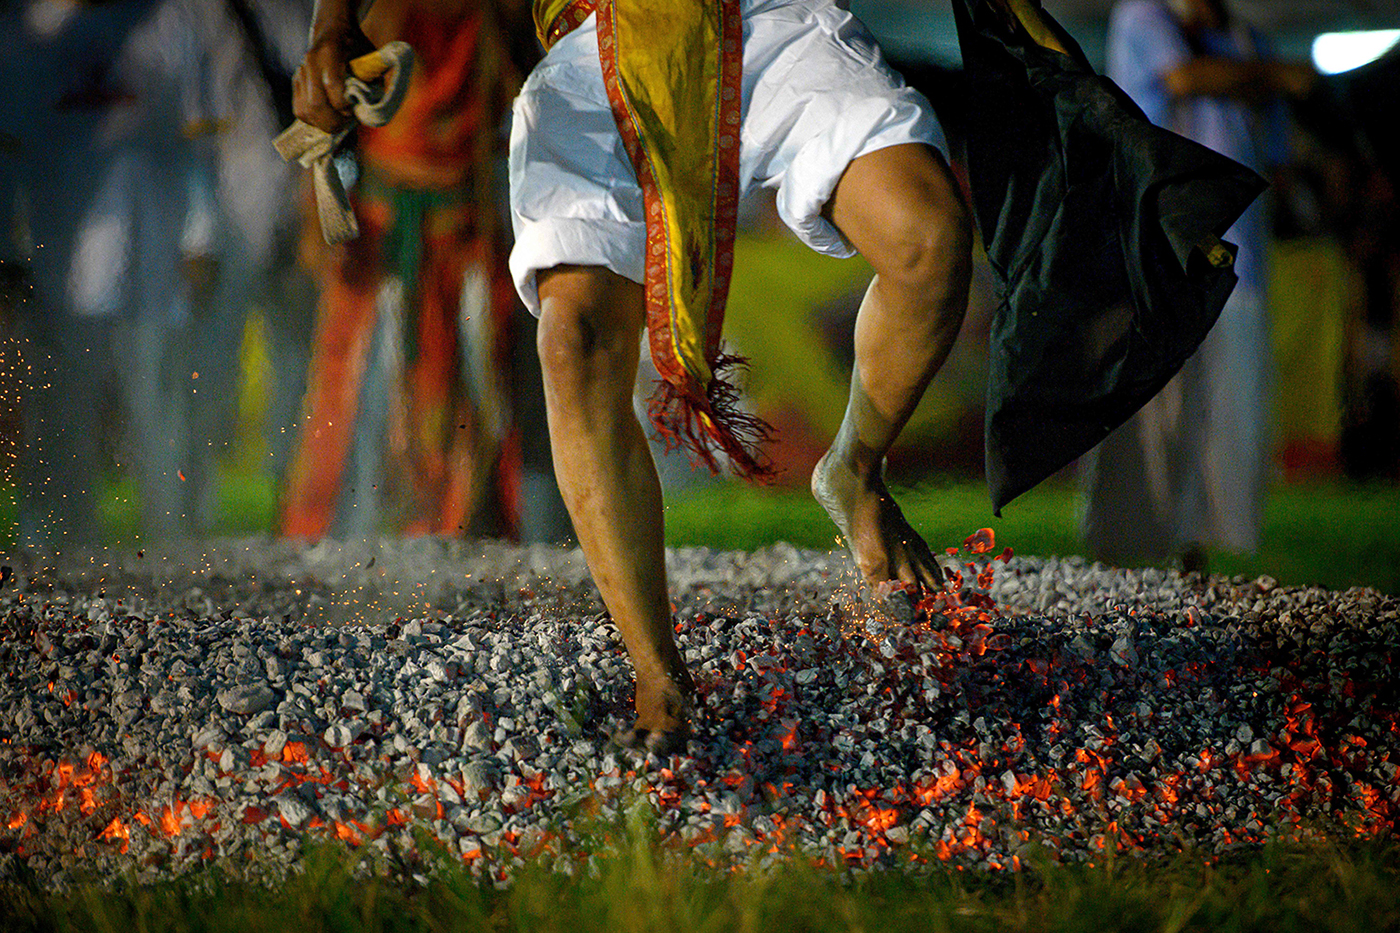 A devotee of a Chinese shrine walks on ambers during the annual Vegetarian Festival in Phuket, Thailand, on Oct. 4. The festival begins on the first evening of the ninth lunar month and lasts for nine days, with many religious devotees slashing themselves with swords, piercing their cheeks with sharp objects, and committing other painful acts to purify themselves, taking on the sins of the community. MLADEN ANTONOV/AFP via Getty Images